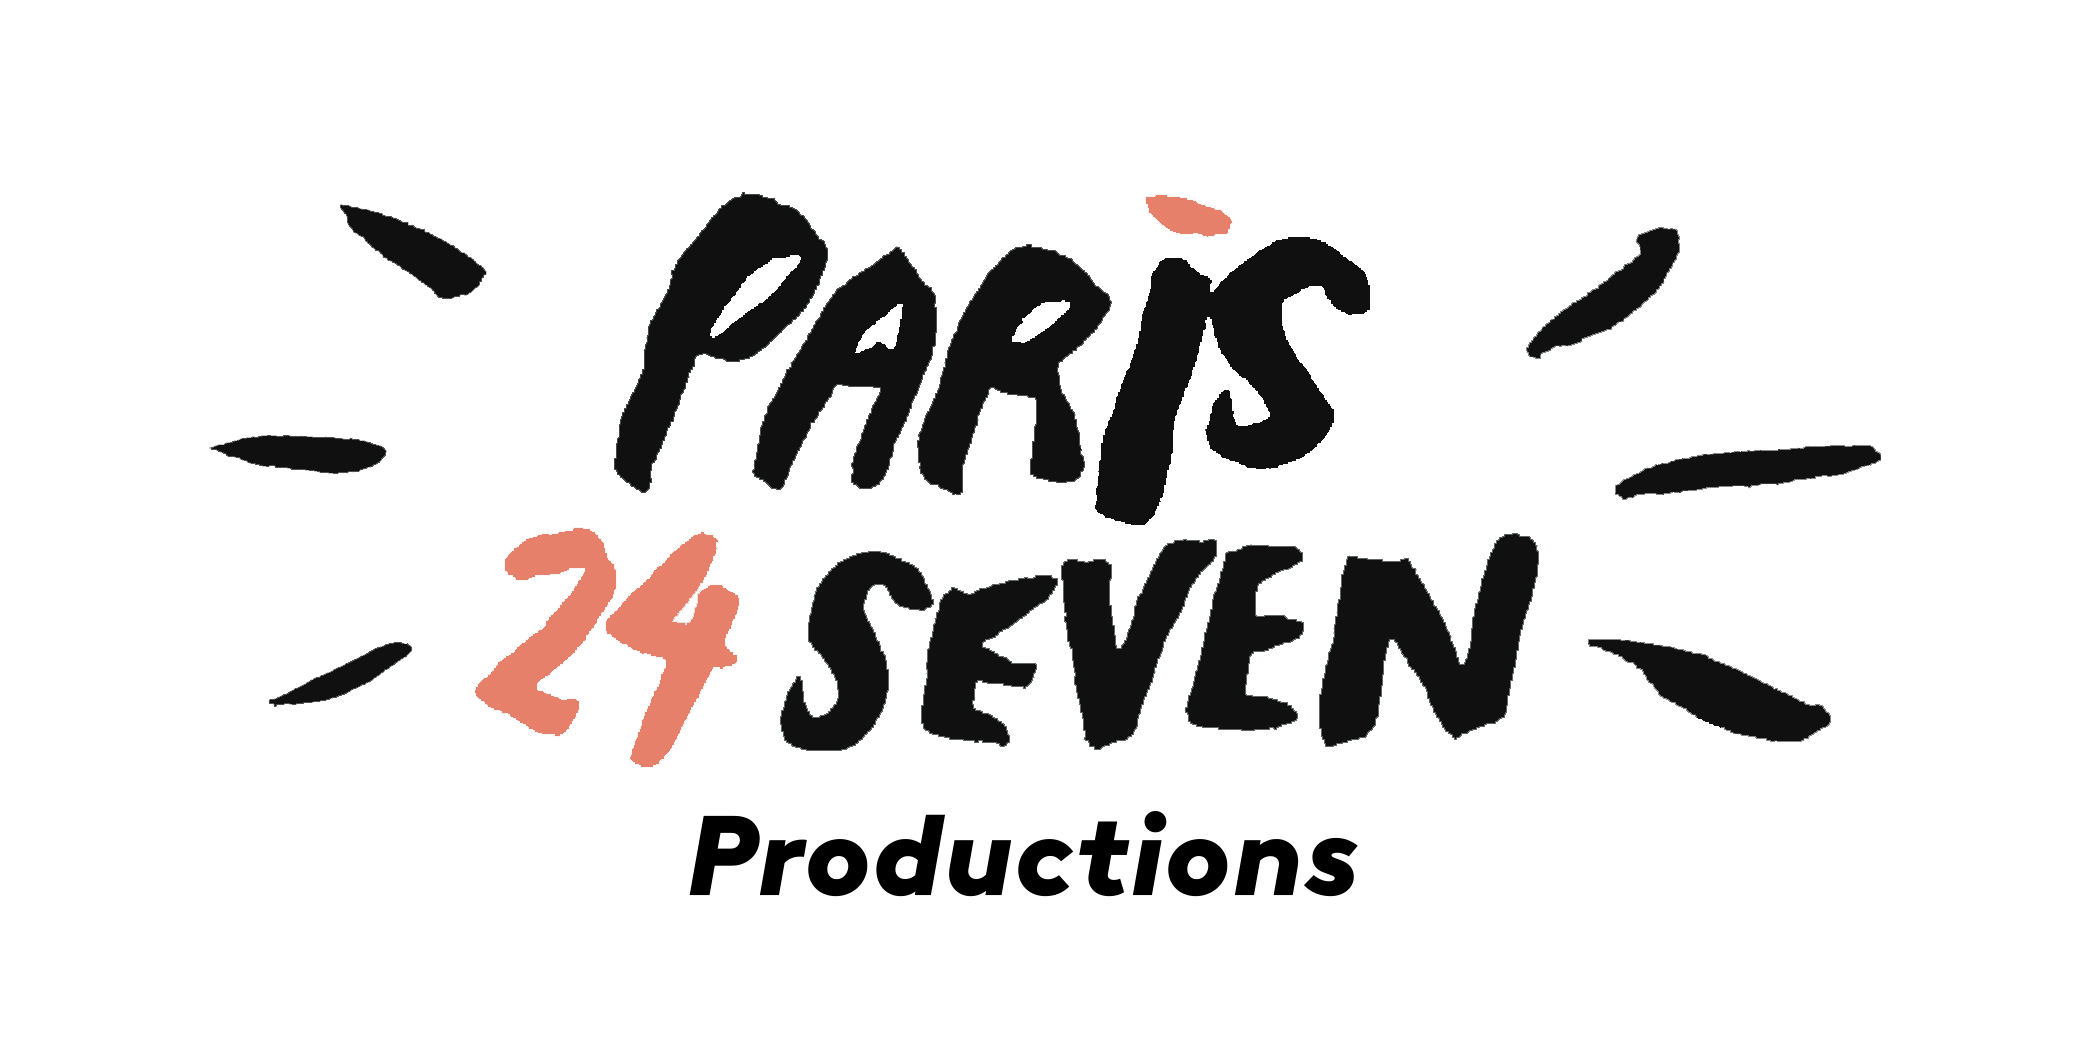 Paris24seven Productions